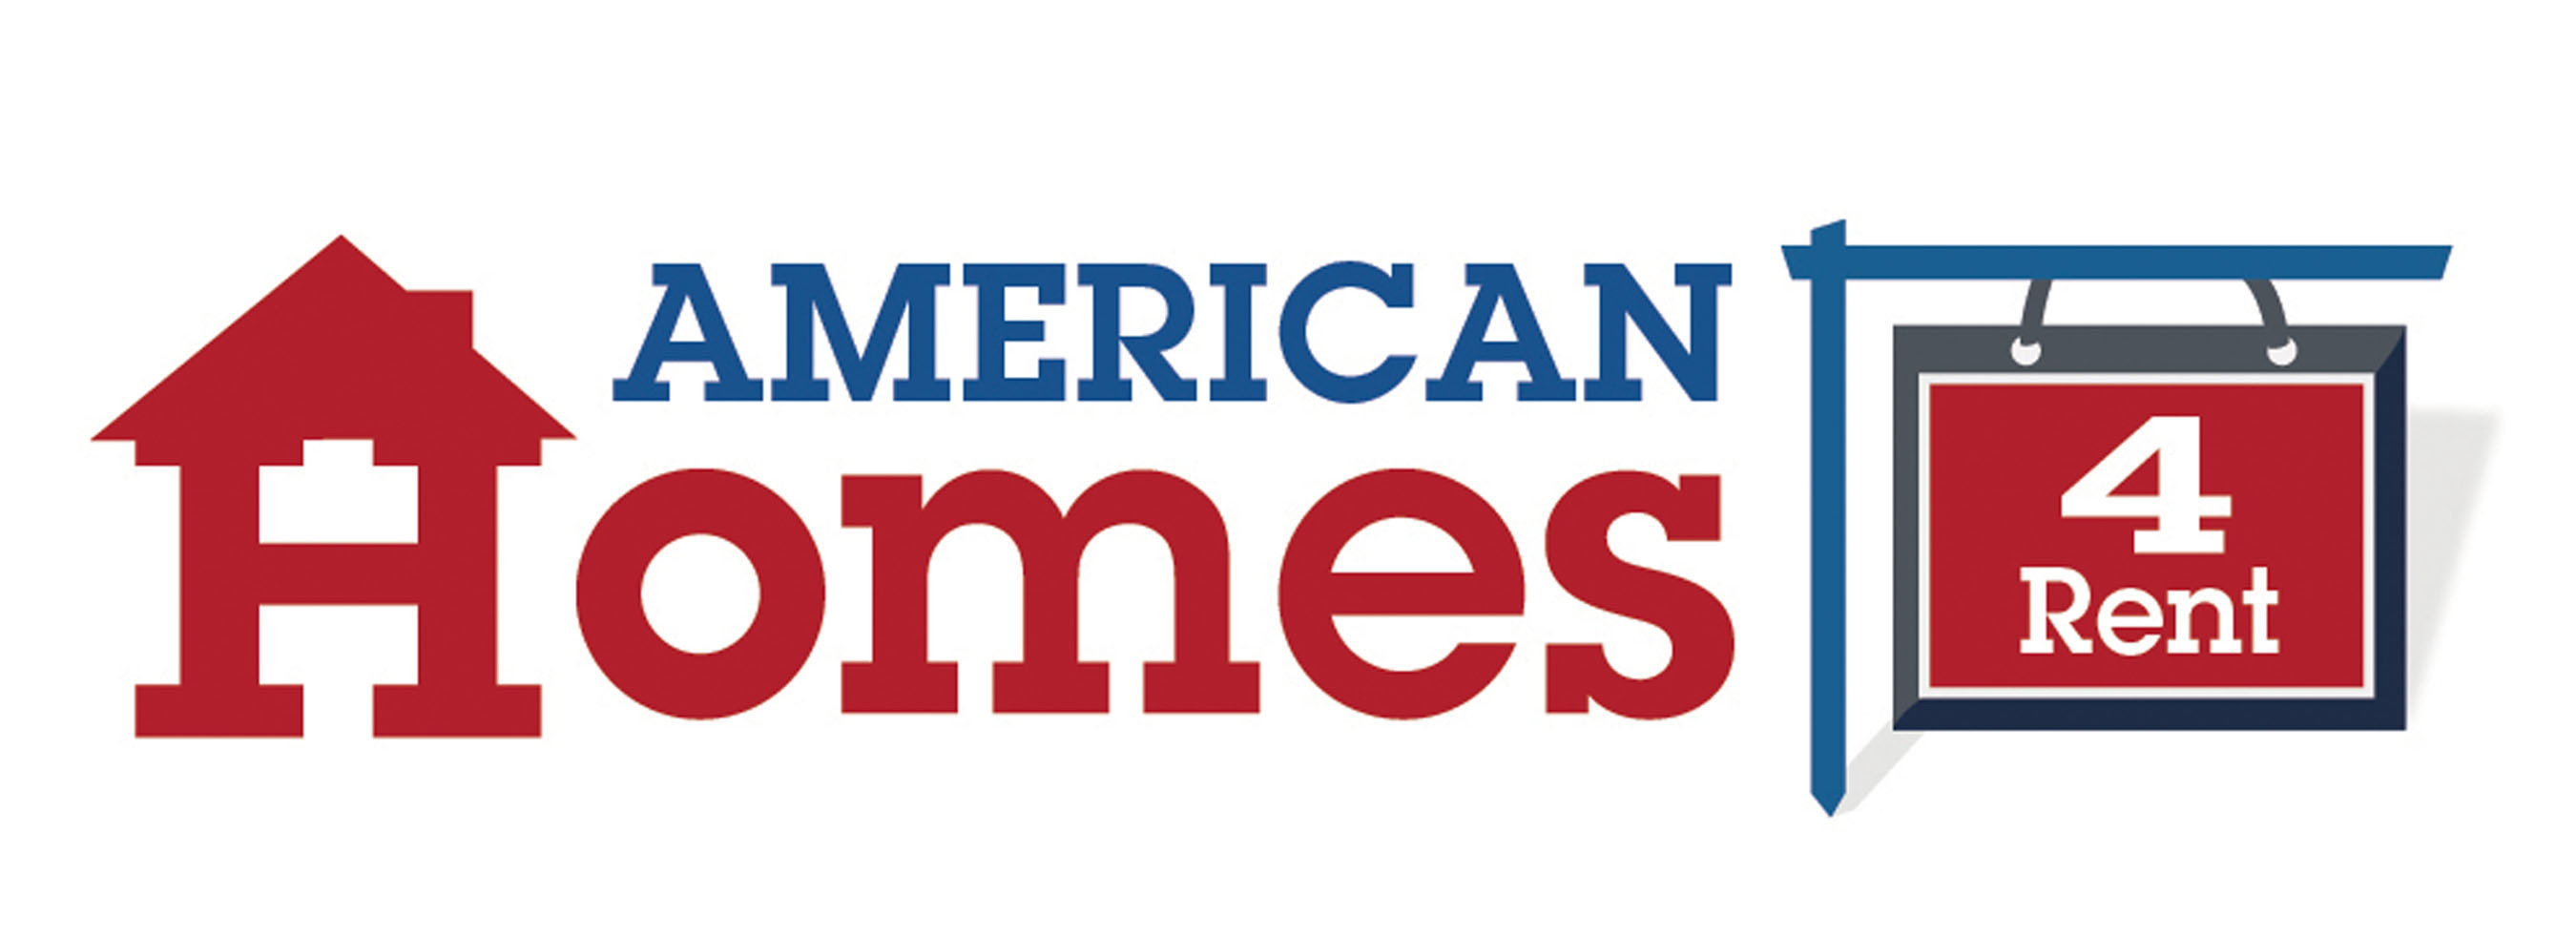 American Homes 4 Rent to Present at NAREIT REITWeek 2015